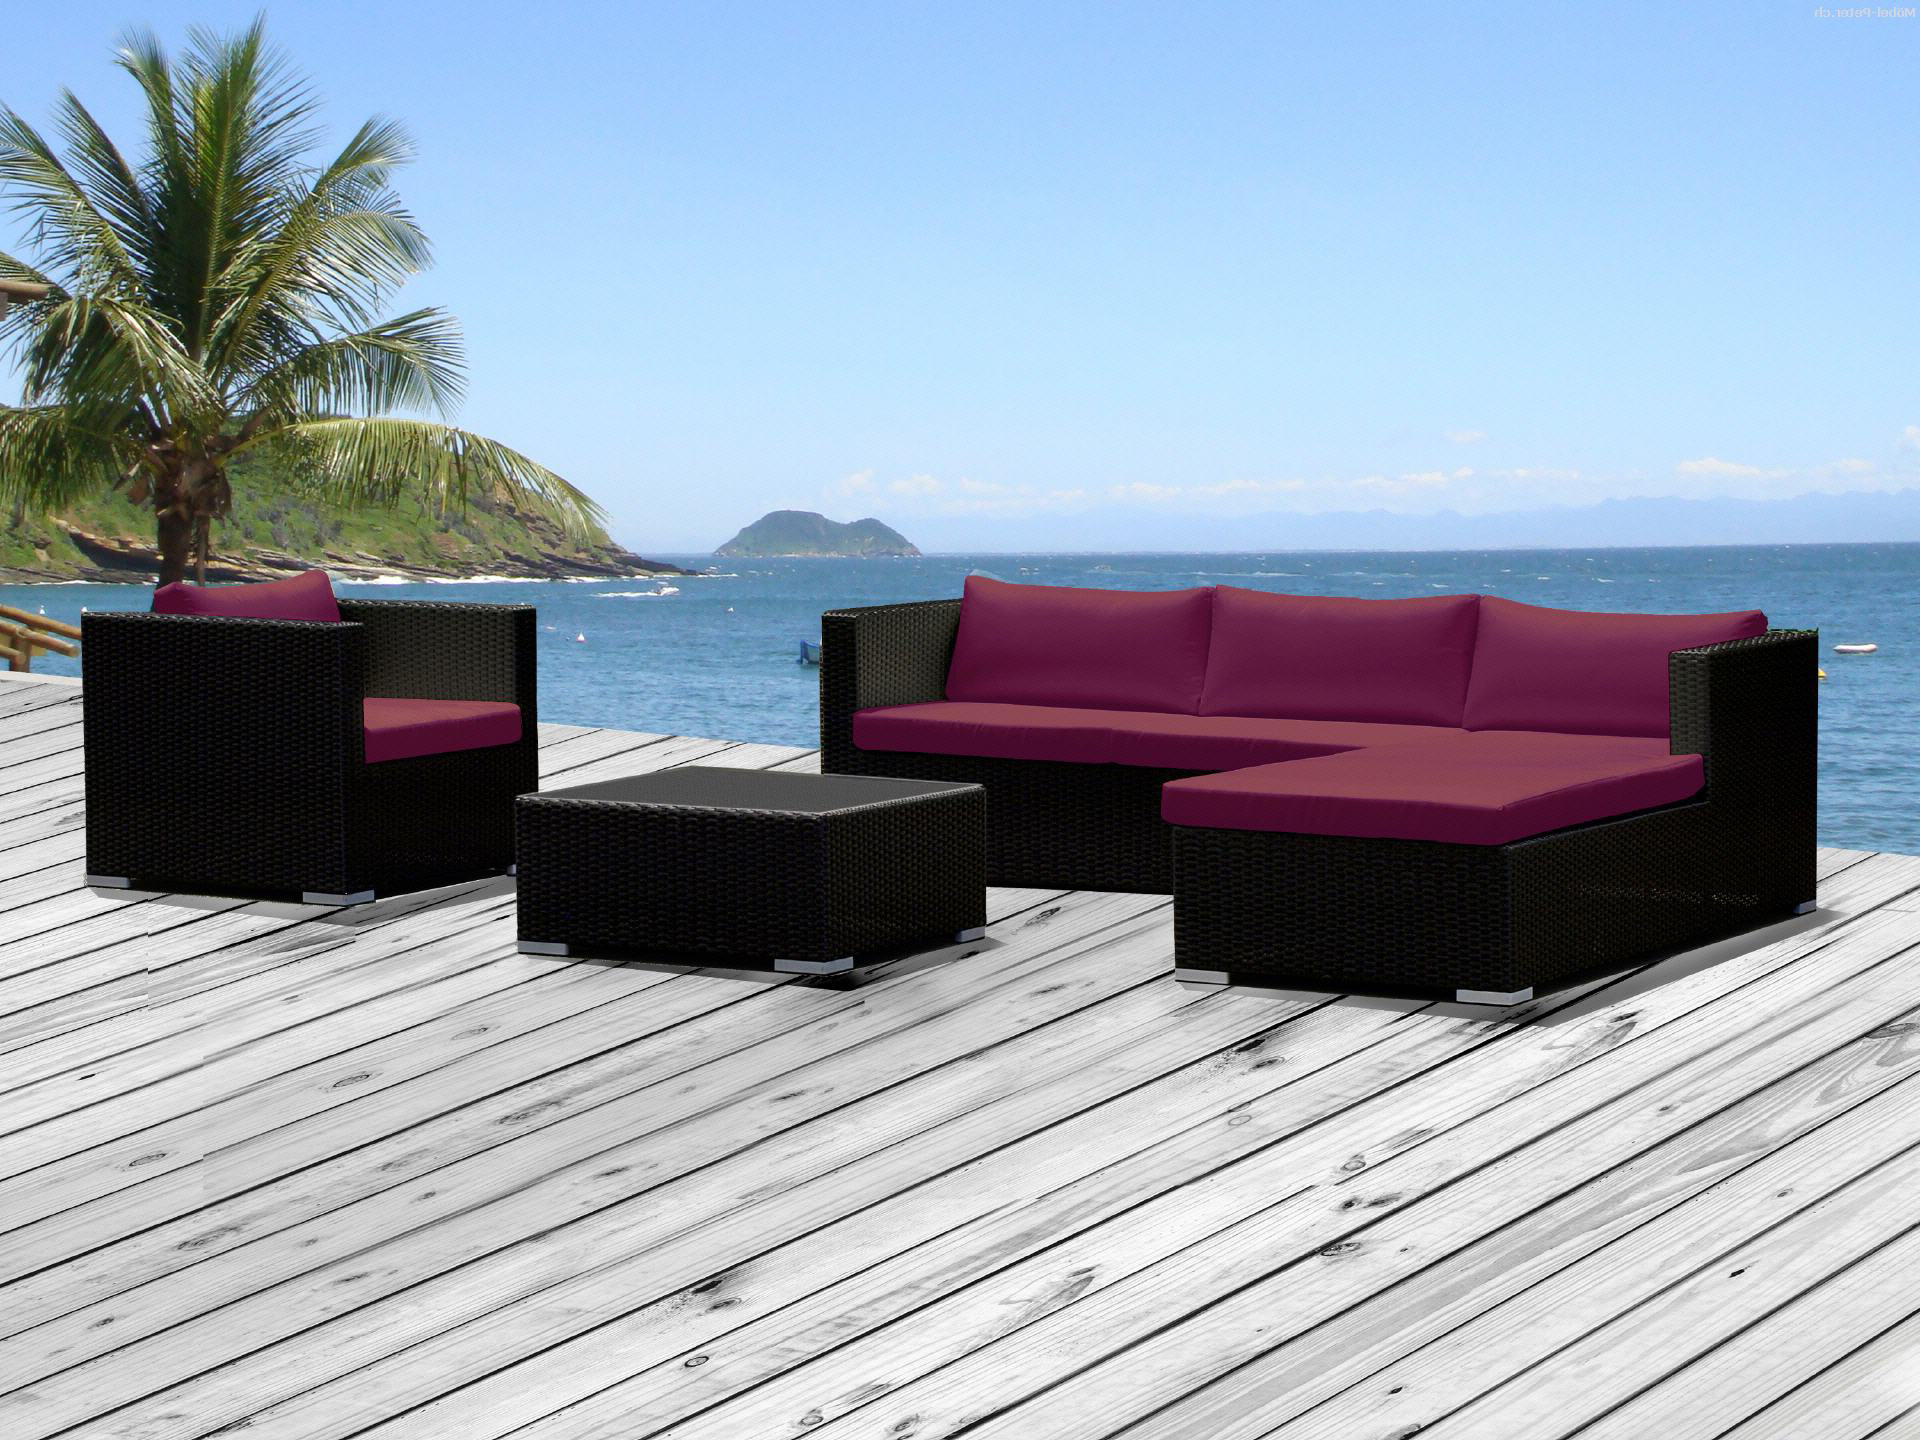 Lounge Liege Outdoor. Top Modern Wicker Used Beach Chaise Lounge ...